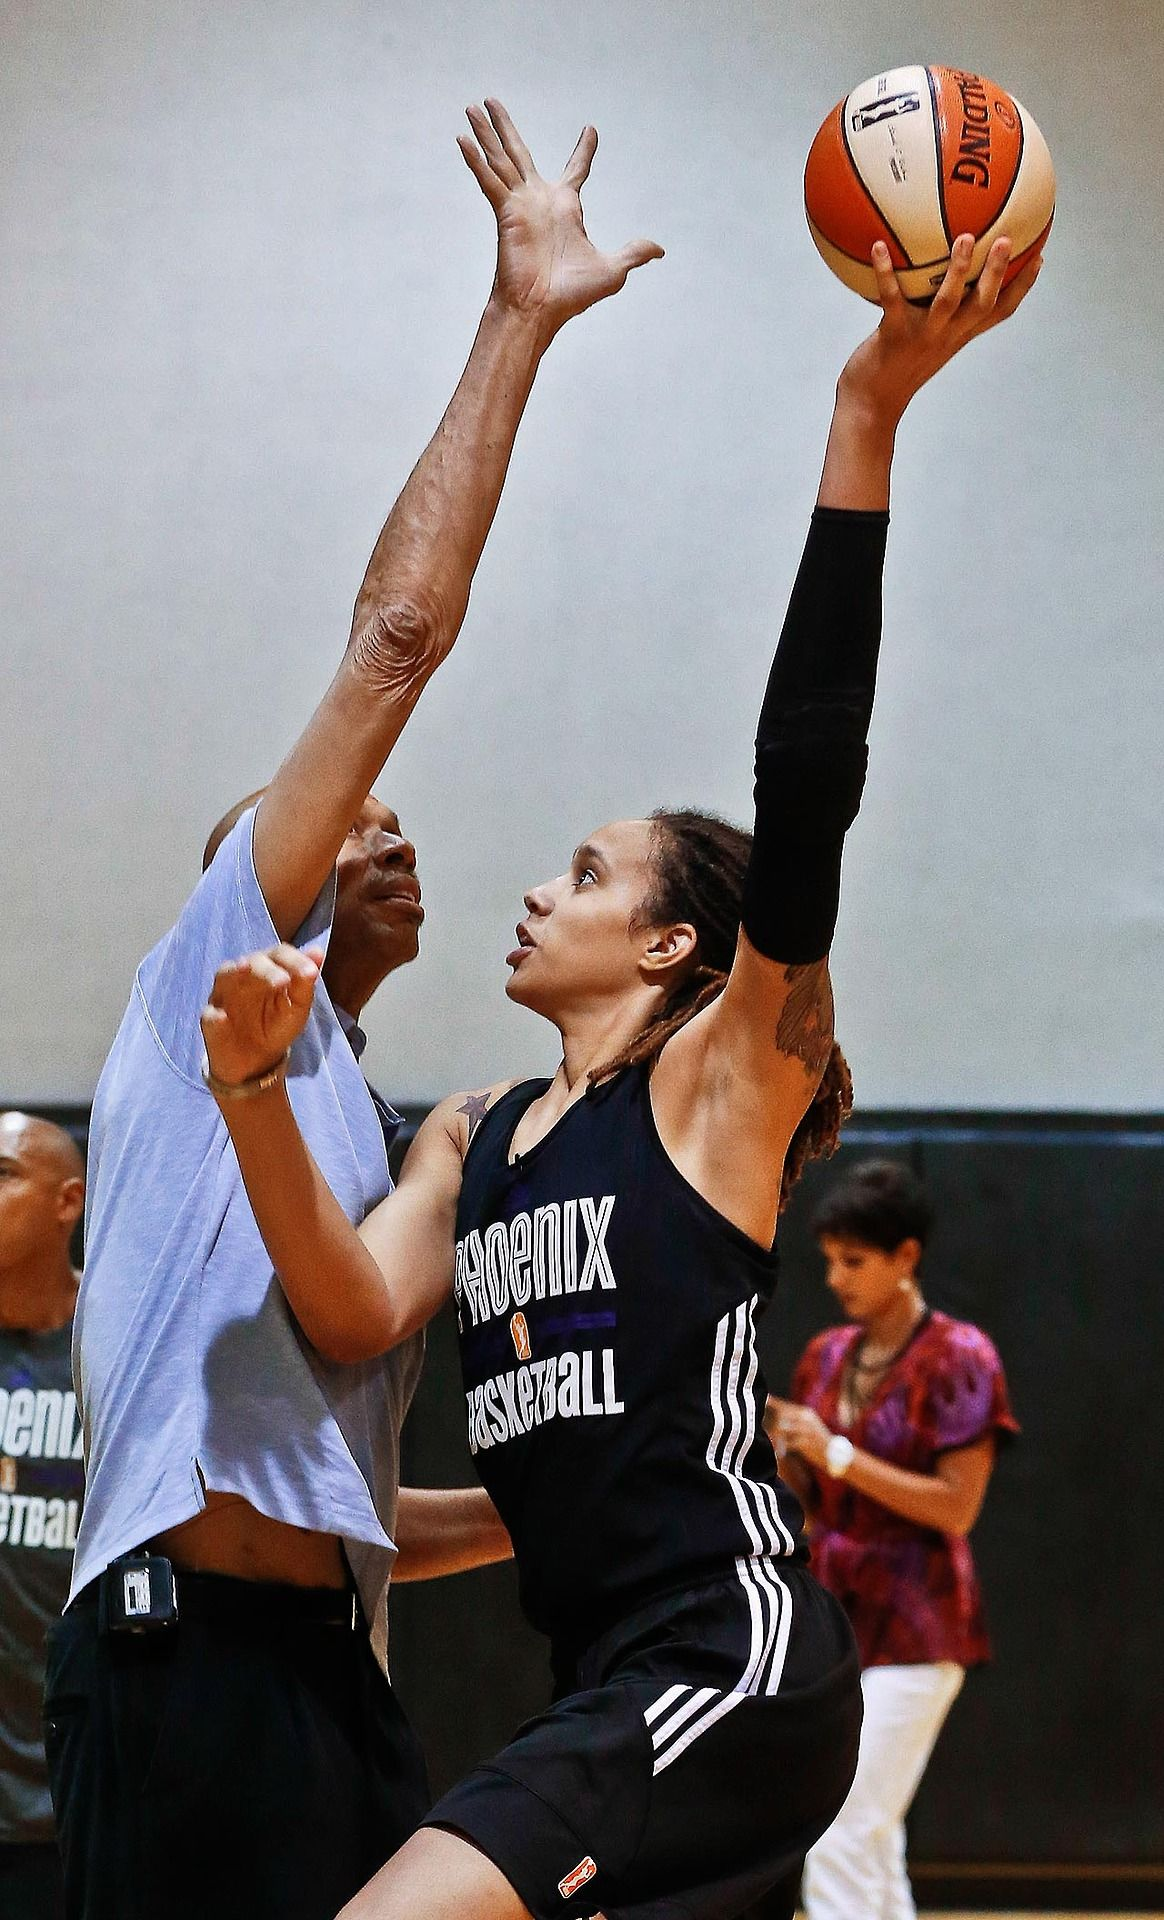 Sporting News Archive Sky Hook In The First Image Phoenix Mercury Sports Brittney Griner Sports News